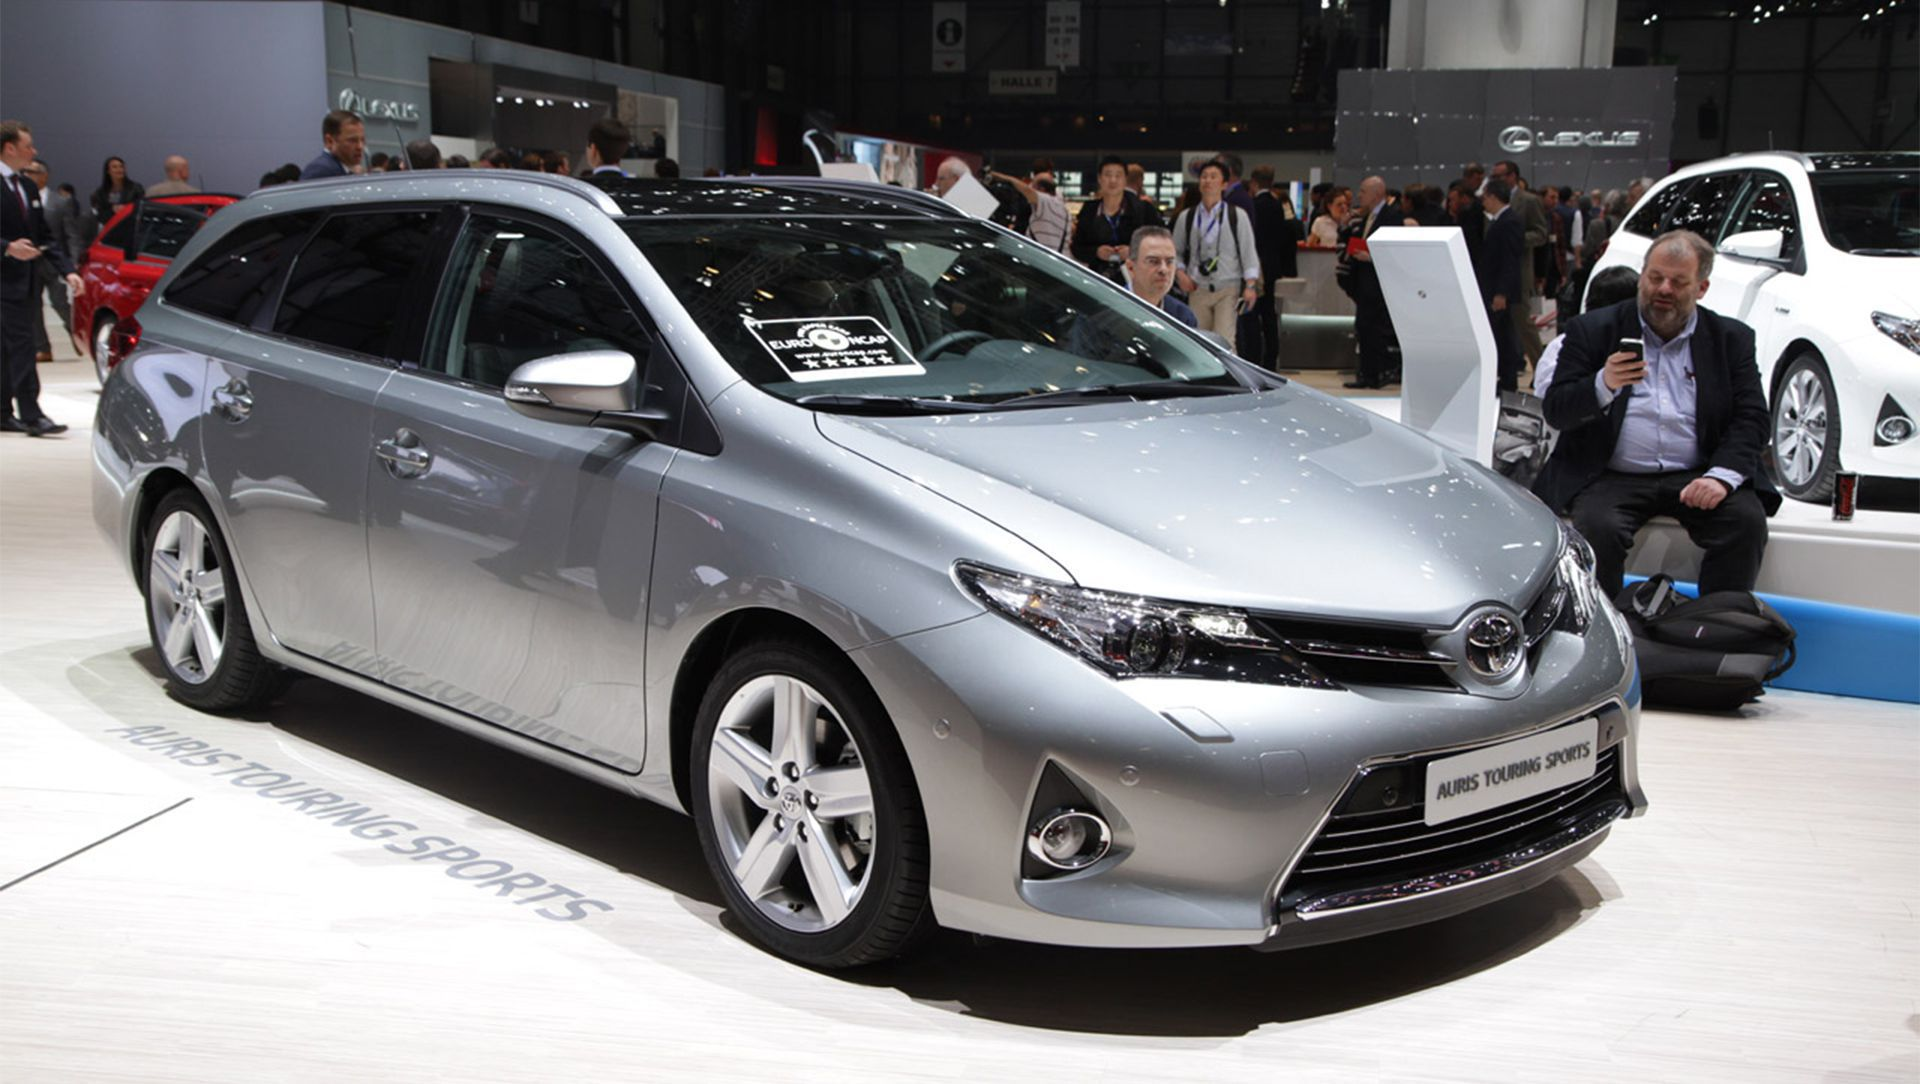 2016 Toyota Corolla Wiring Diagram Pollution Worries Hybrid Range Offers A Comprehensive 2013 Geneva Motor Show Auris Touring Sports